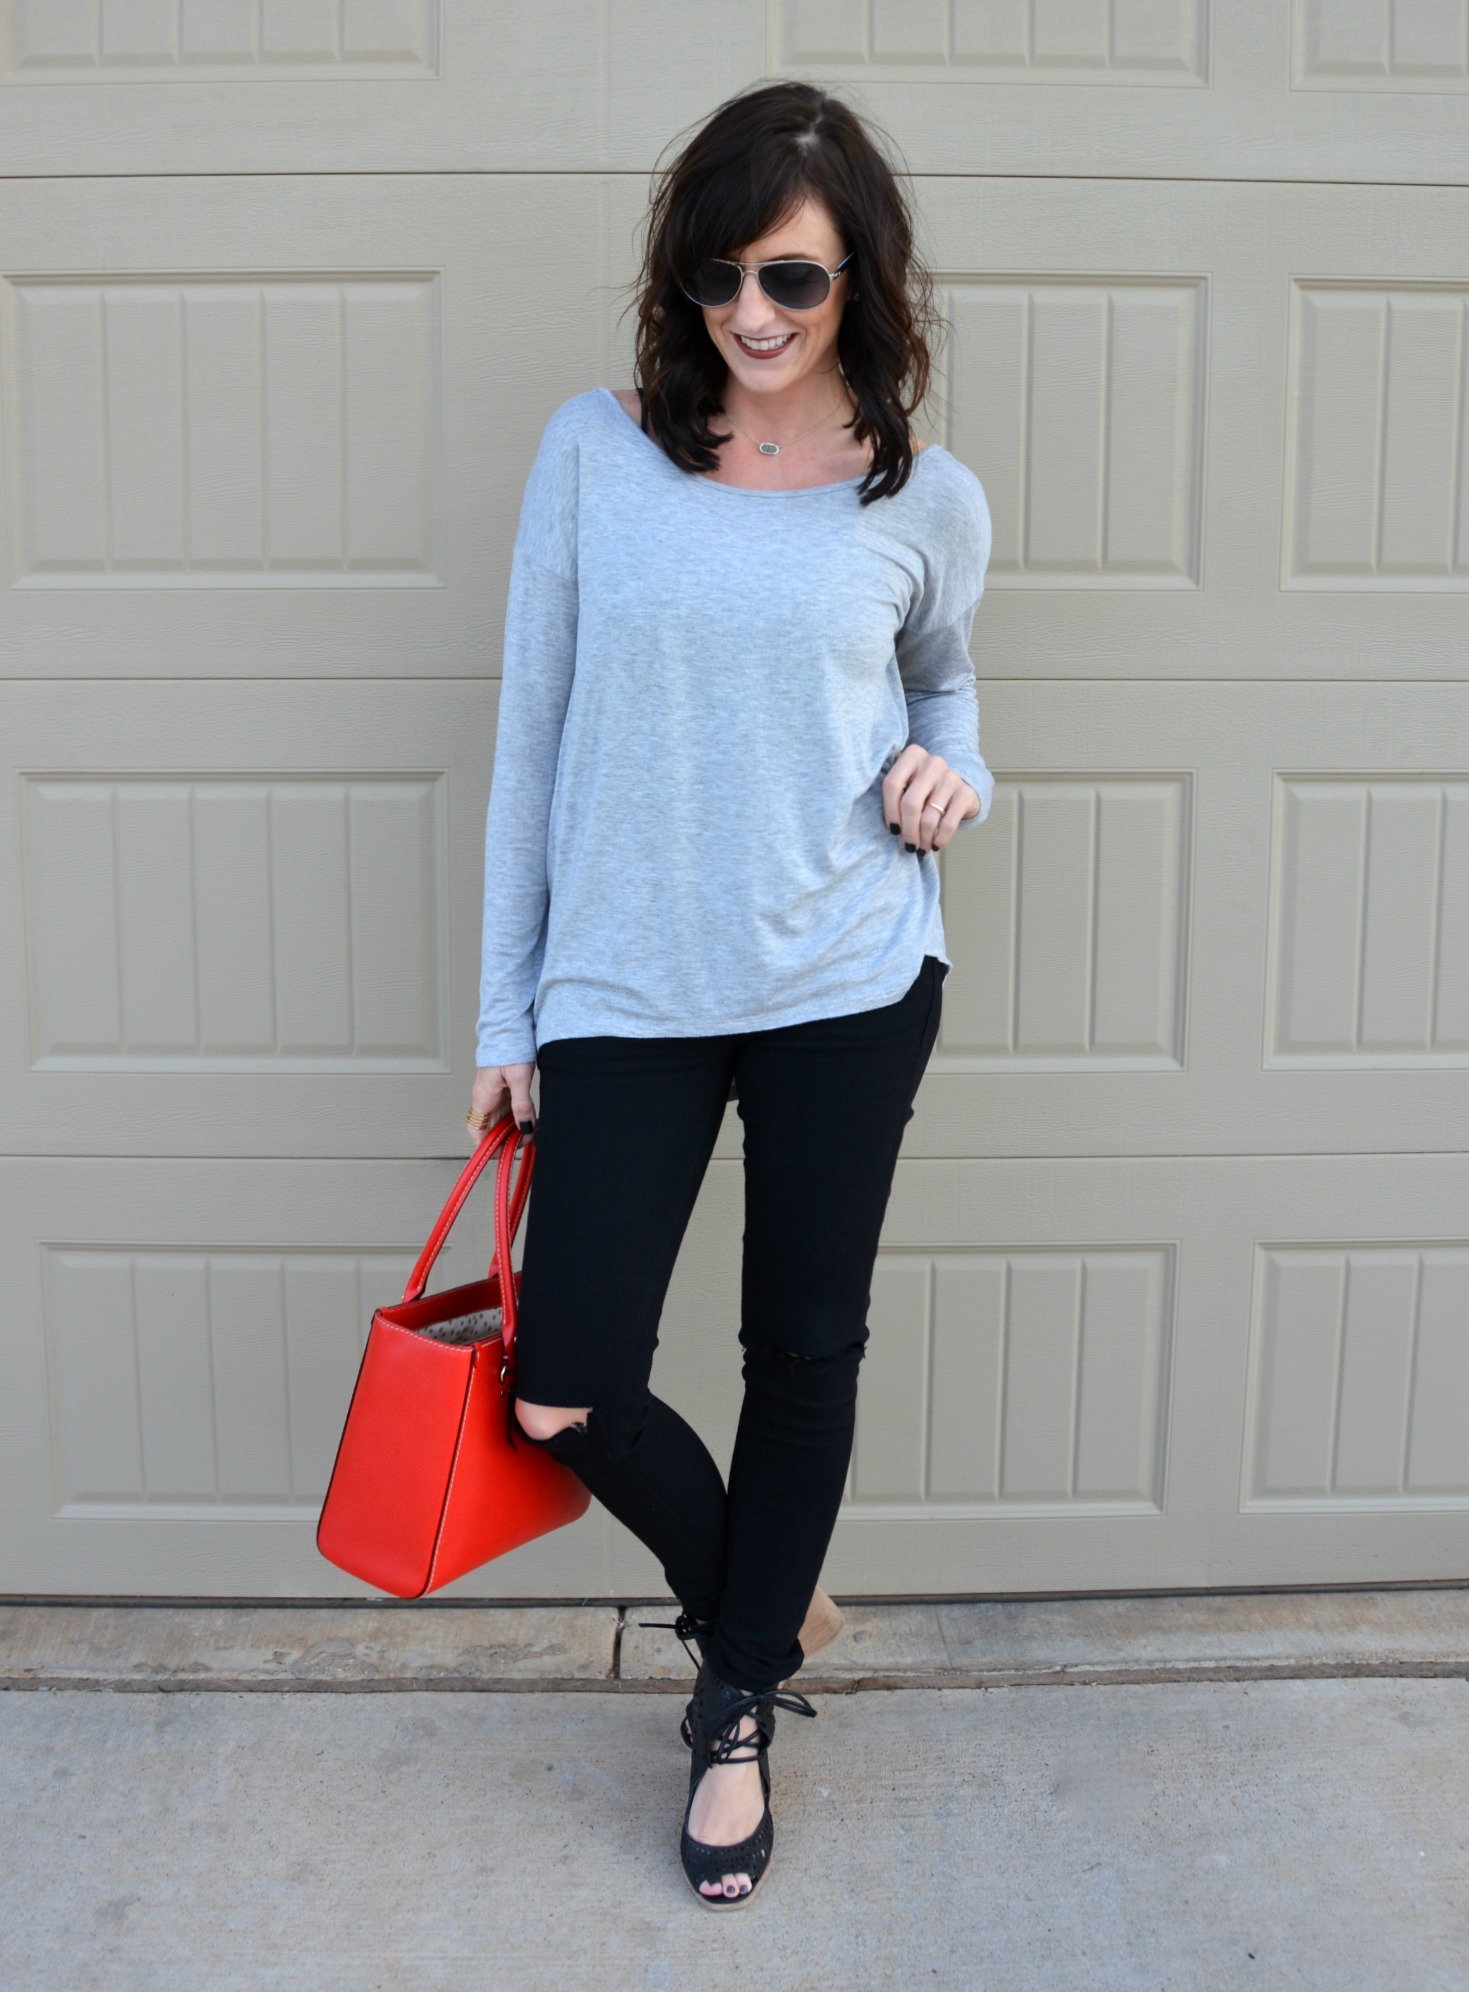 Amazing Casual Friday Dress Code | Dress Images